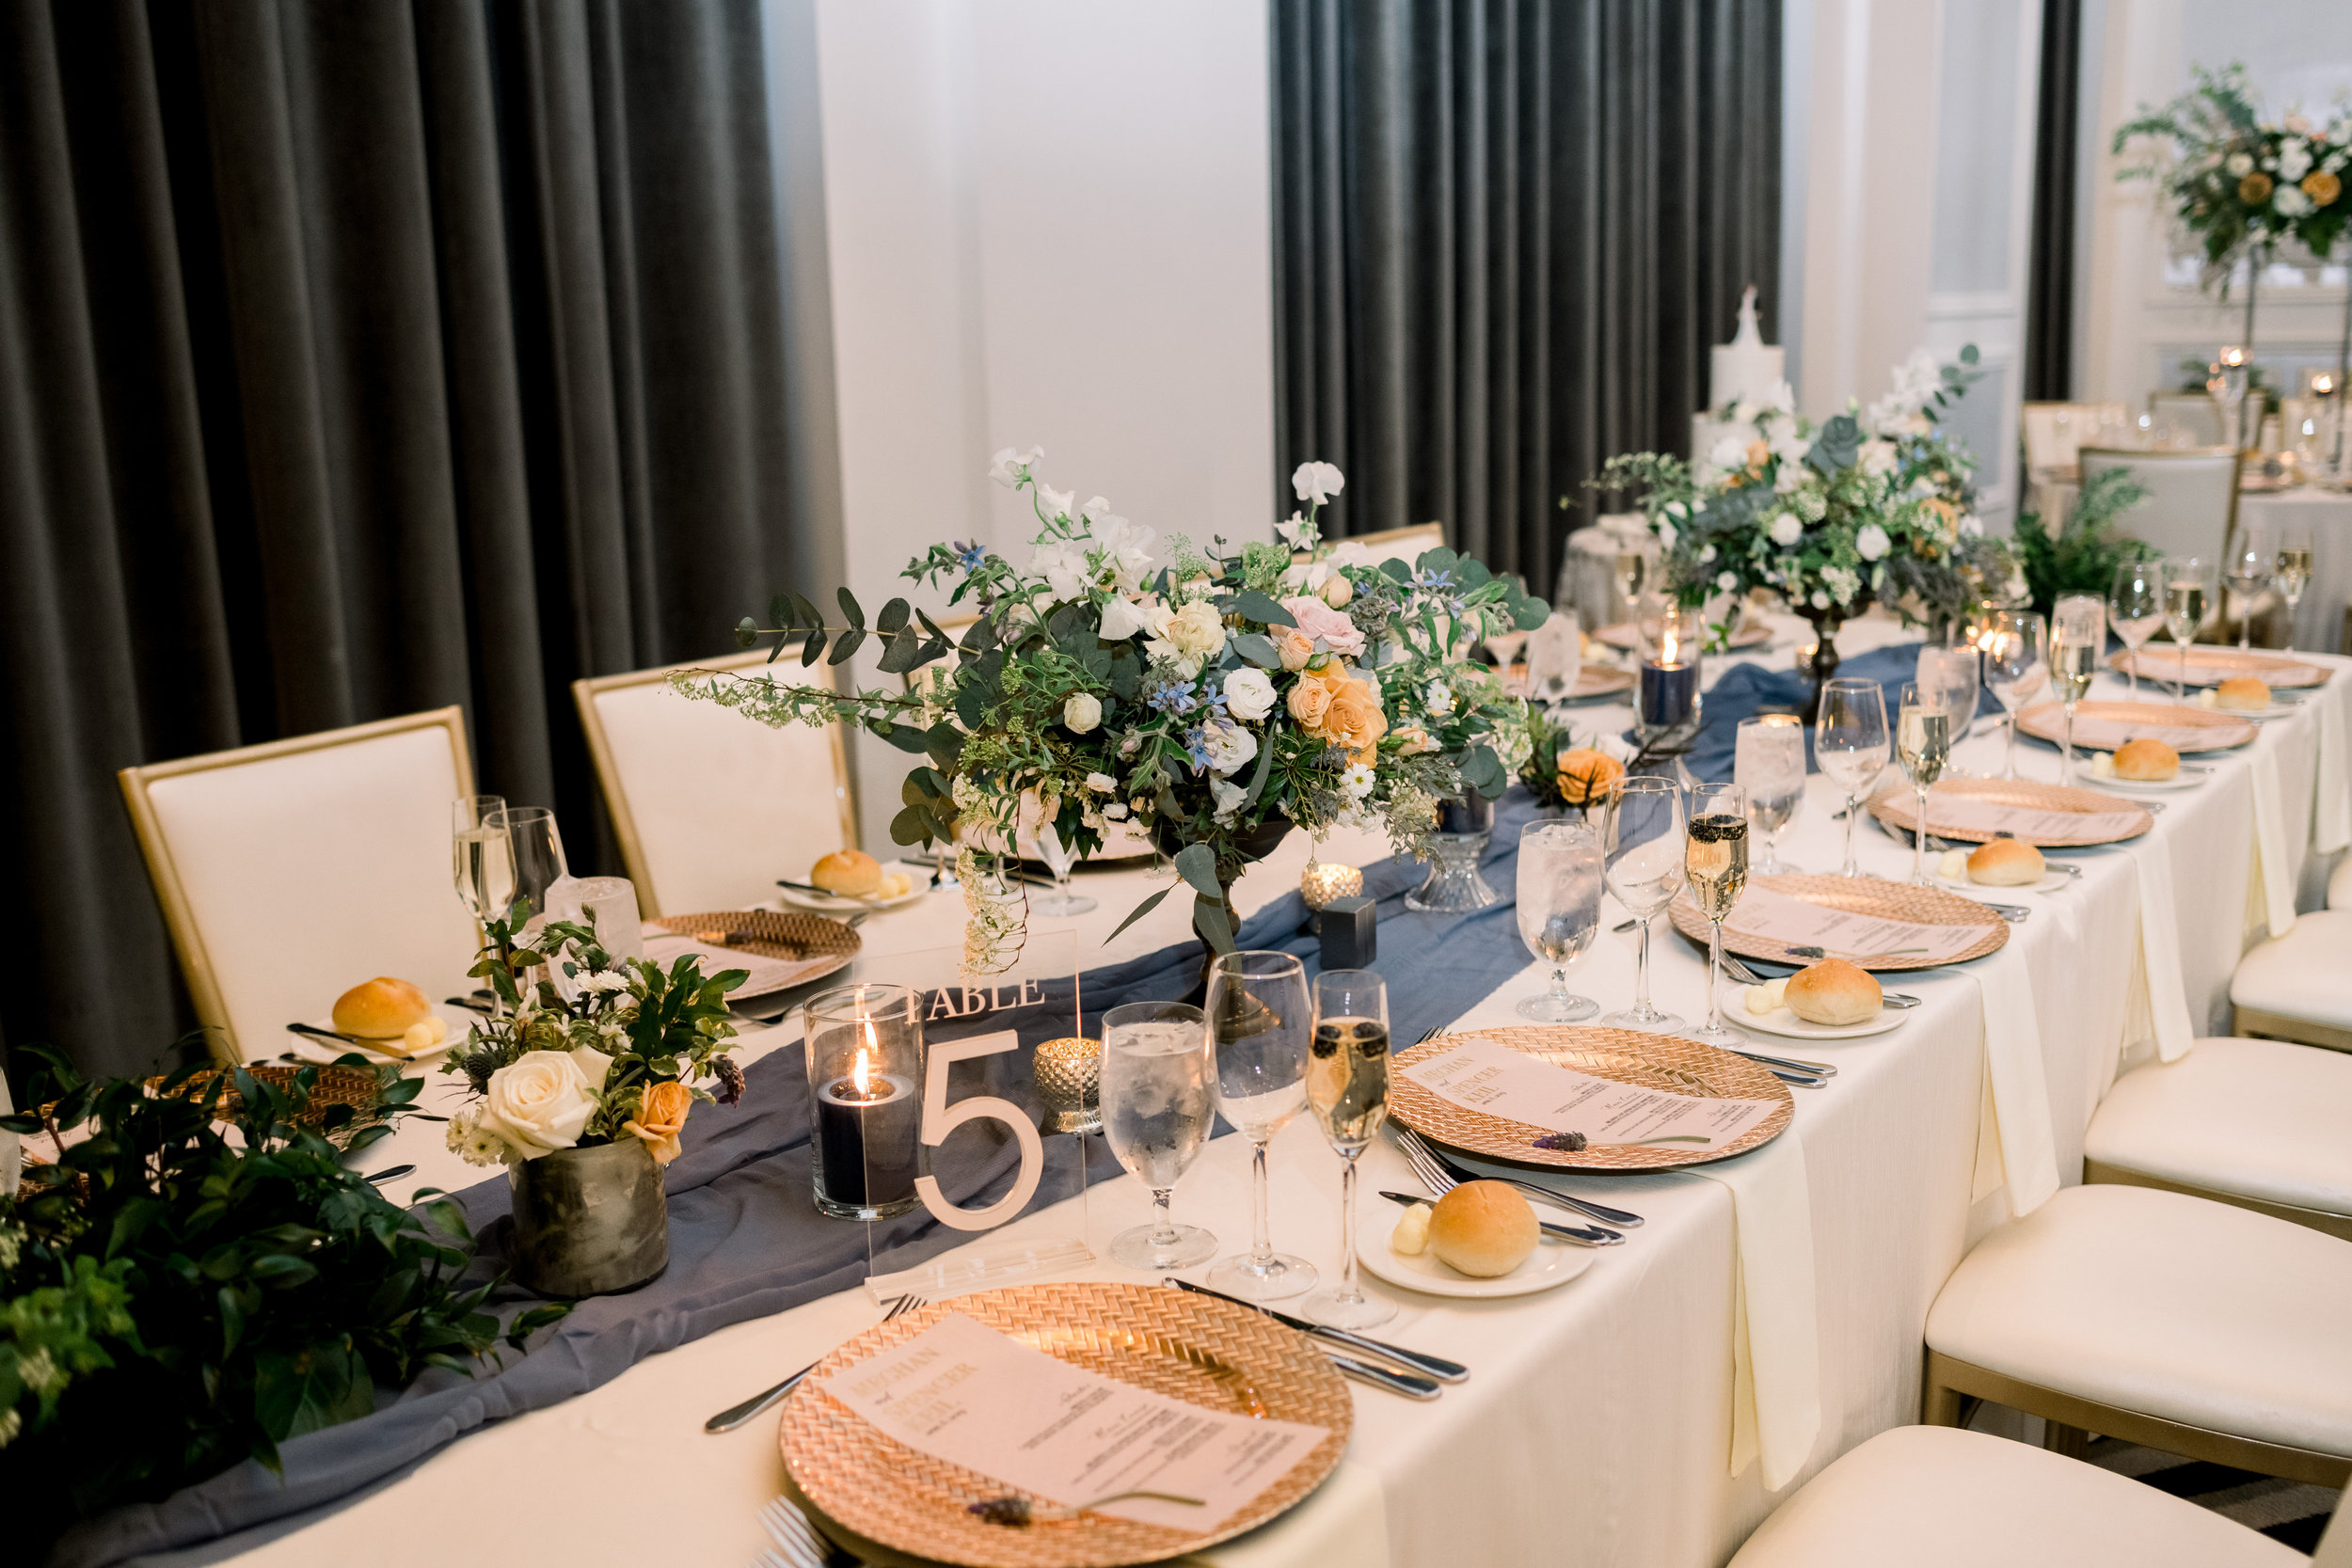 Contemporary wedding decor for Pittsburgh wedding at Hotel Monaco planned by Exhale Events. Find more modern wedding ideas at exhale-events.com!